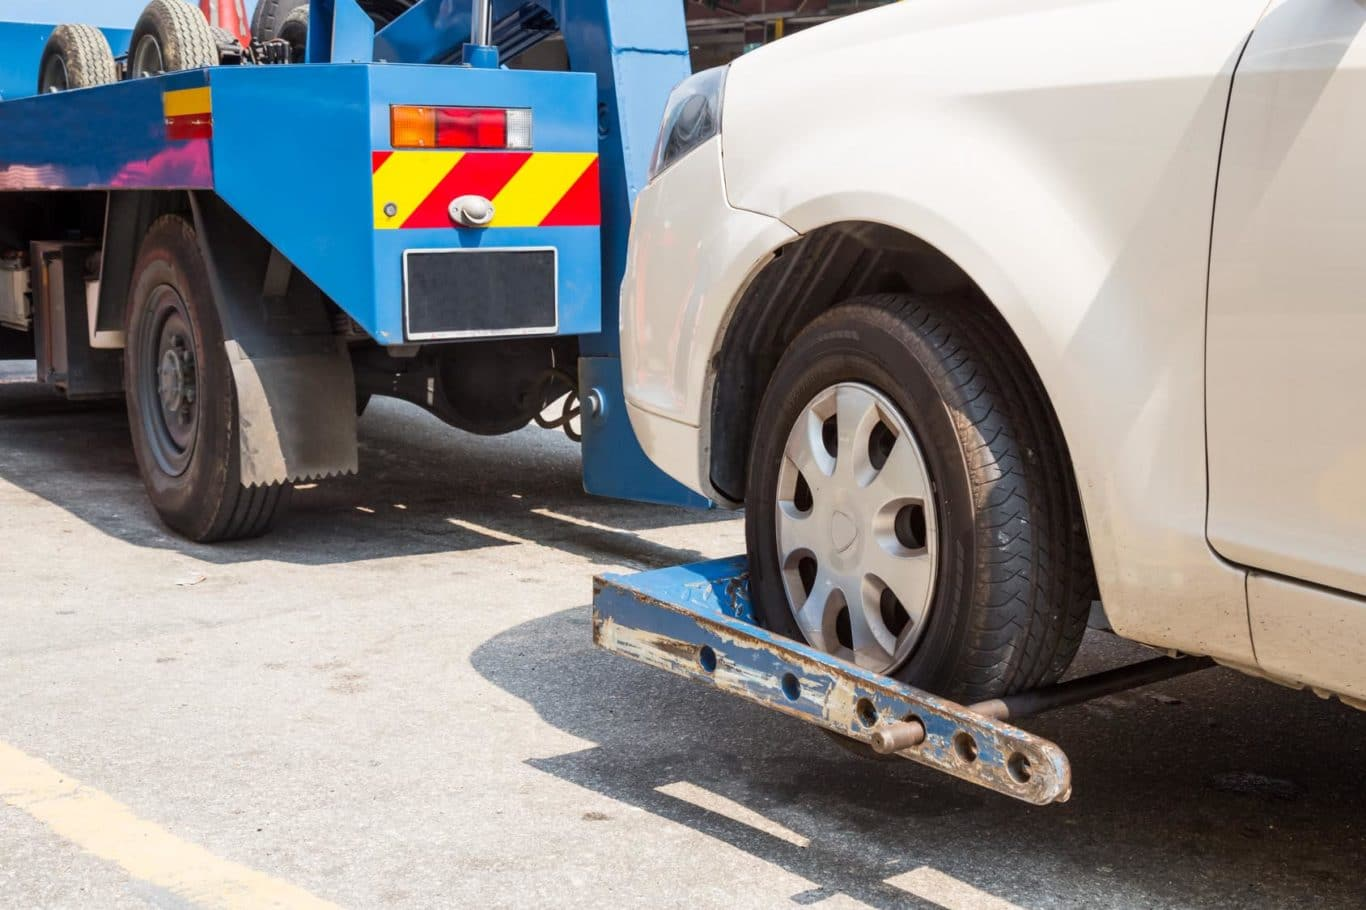 Eadestown expert Car Recovery services